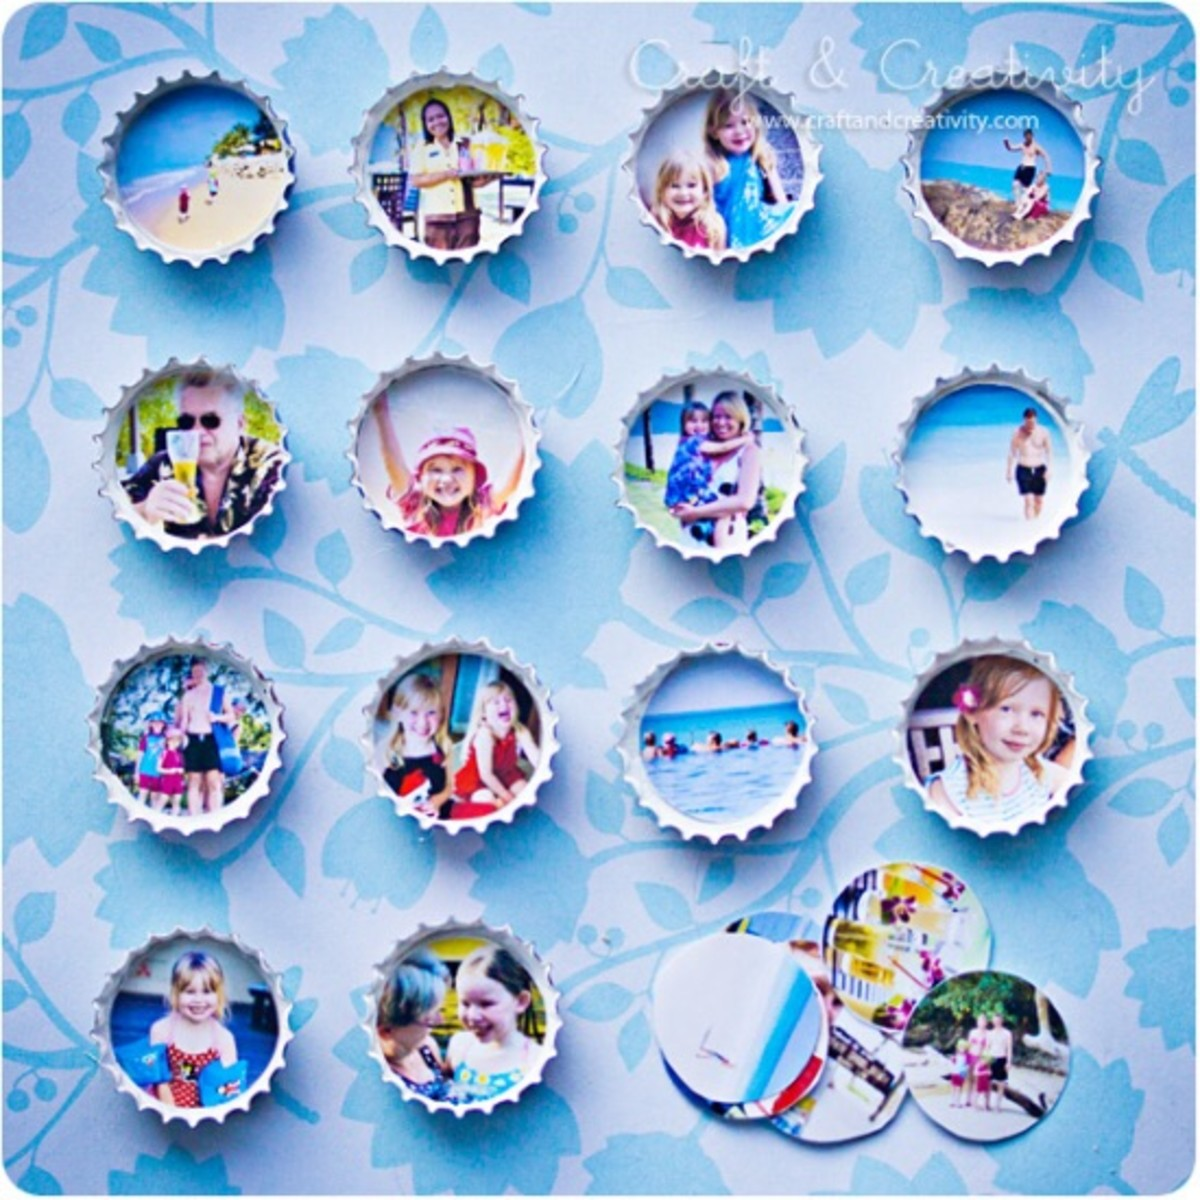 bottlecap photo ideas